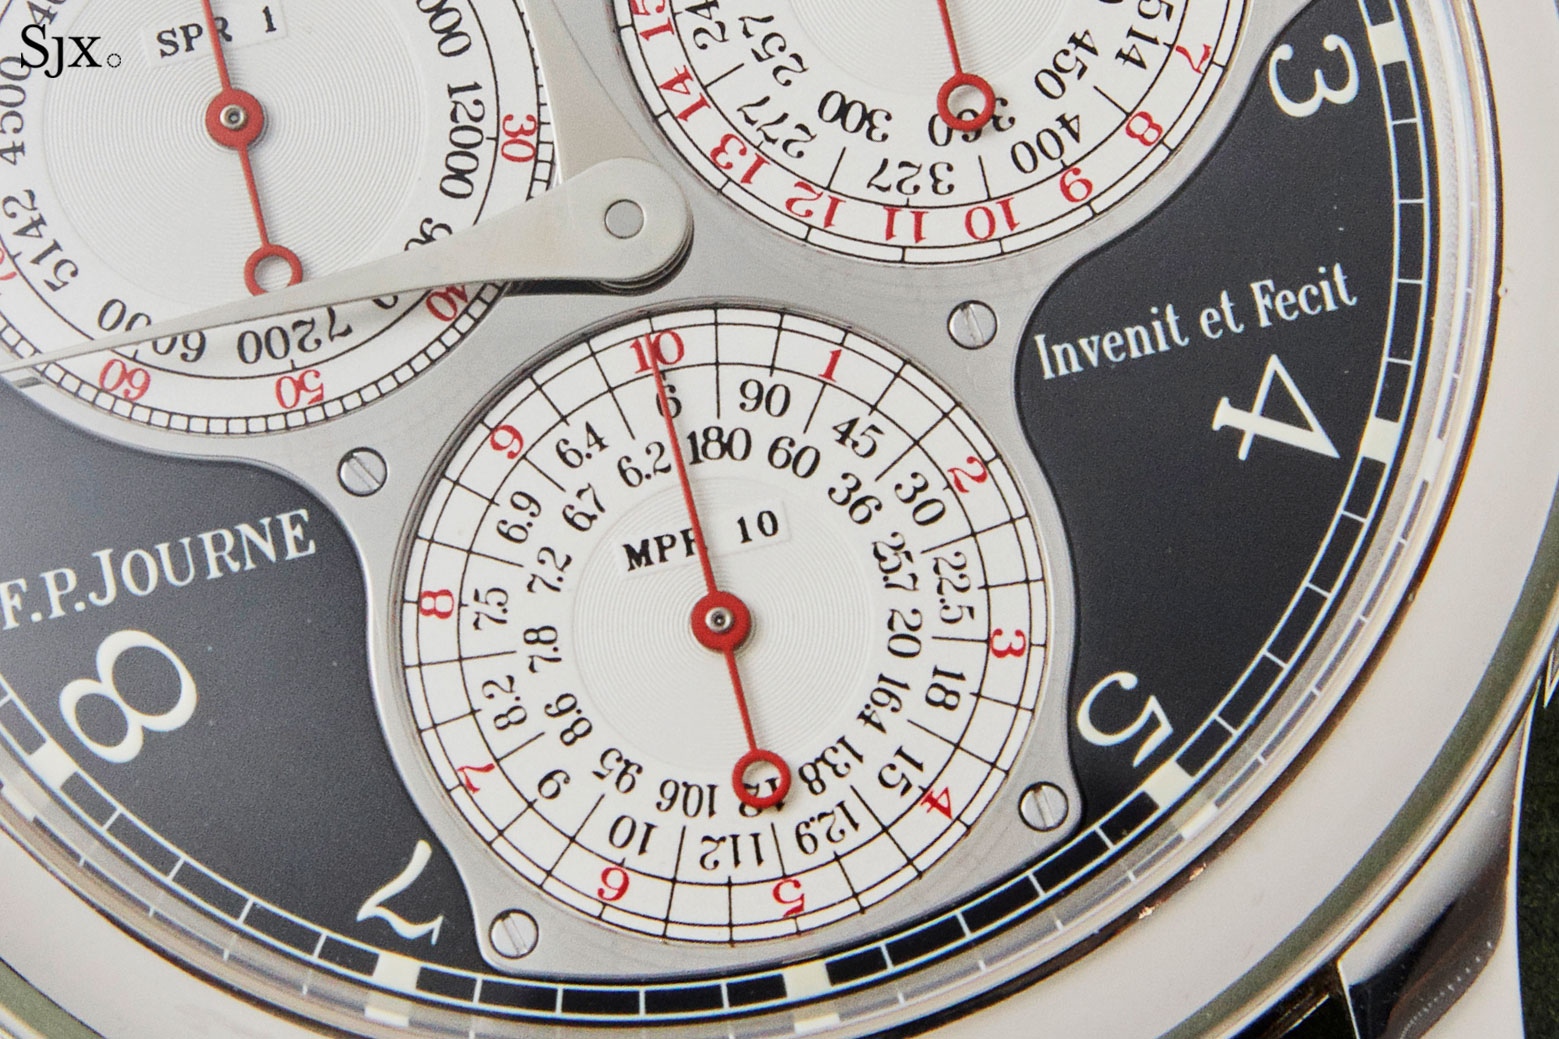 FP Journe Centigraphe Black Label 1